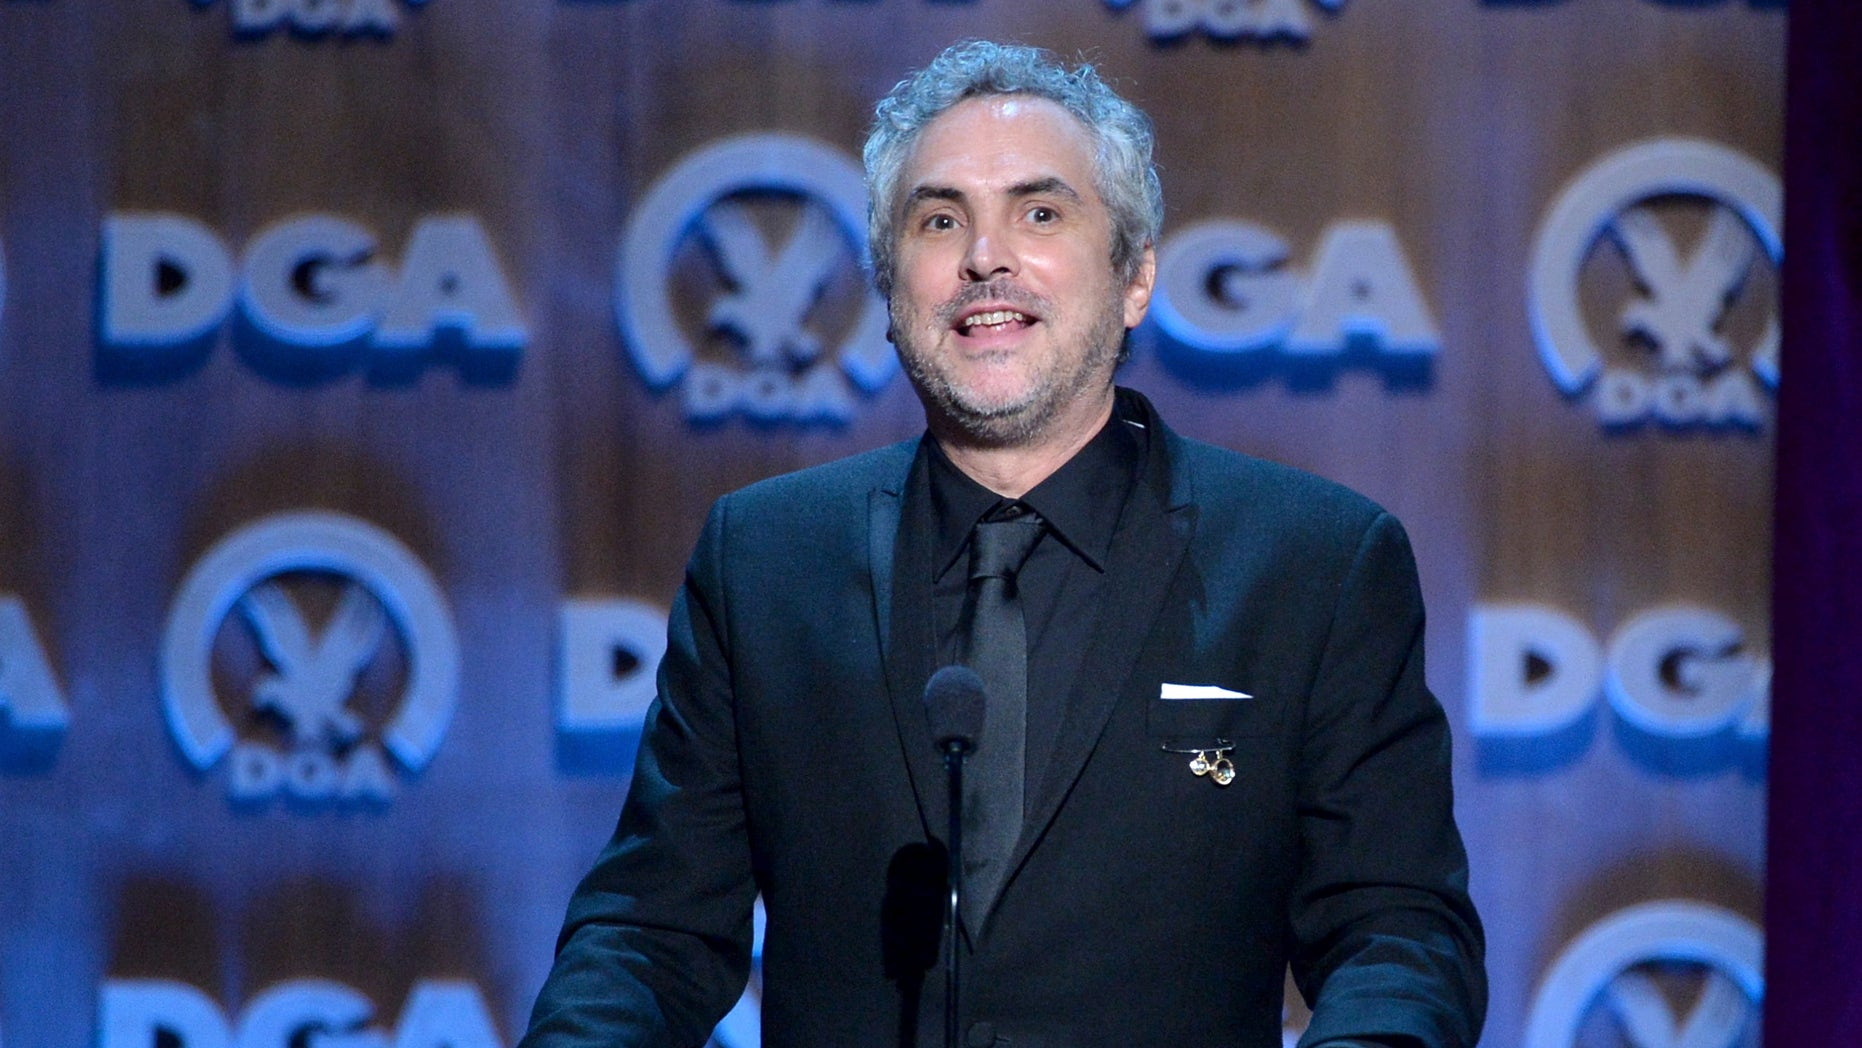 CENTURY CITY, CA - JANUARY 25:  Director Alfonso Cuaron accepts the Outstanding Directorial Achievement in Feature Film for 2013 award for ÂGravityonstage at the 66th Annual Directors Guild Of America Awards held at the Hyatt Regency Century Plaza on January 25, 2014 in Century City, California.  (Photo by Alberto E. Rodriguez/Getty Images for DGA)